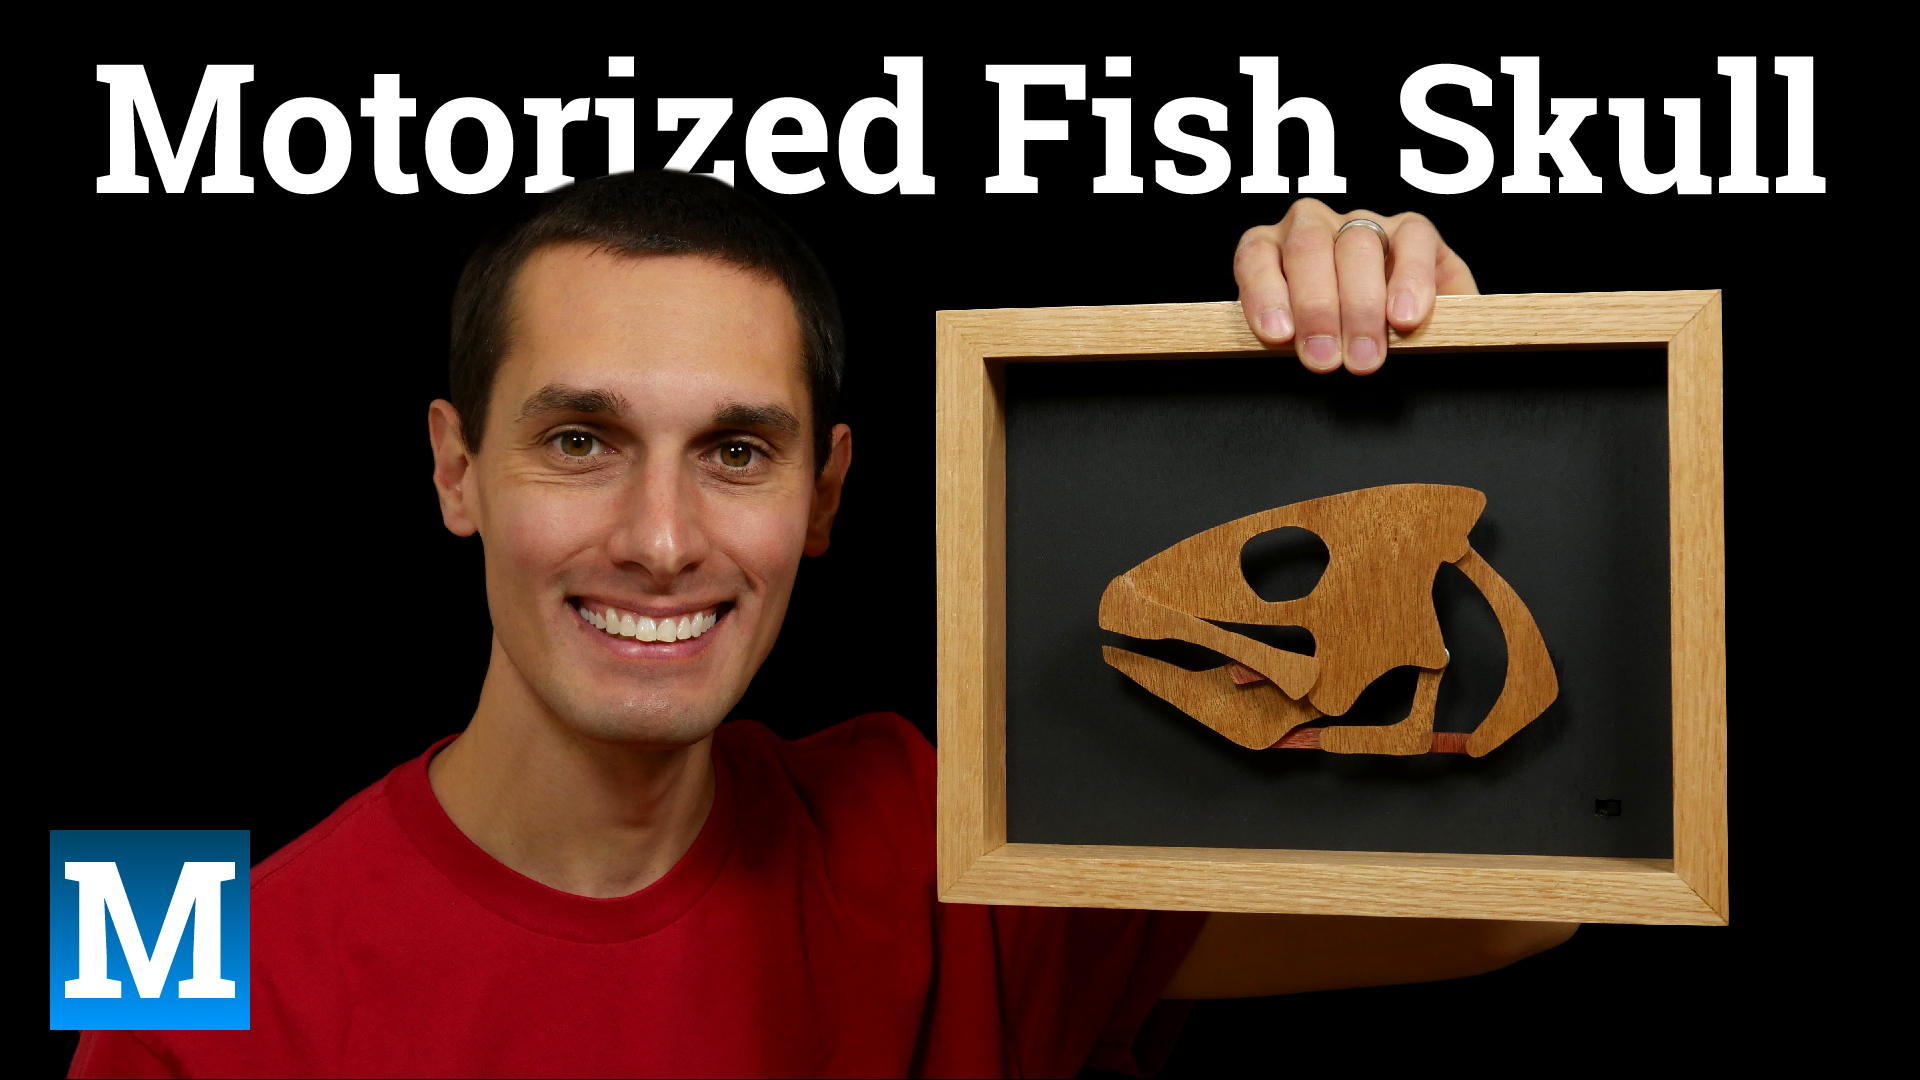 Motorized Fish Skull